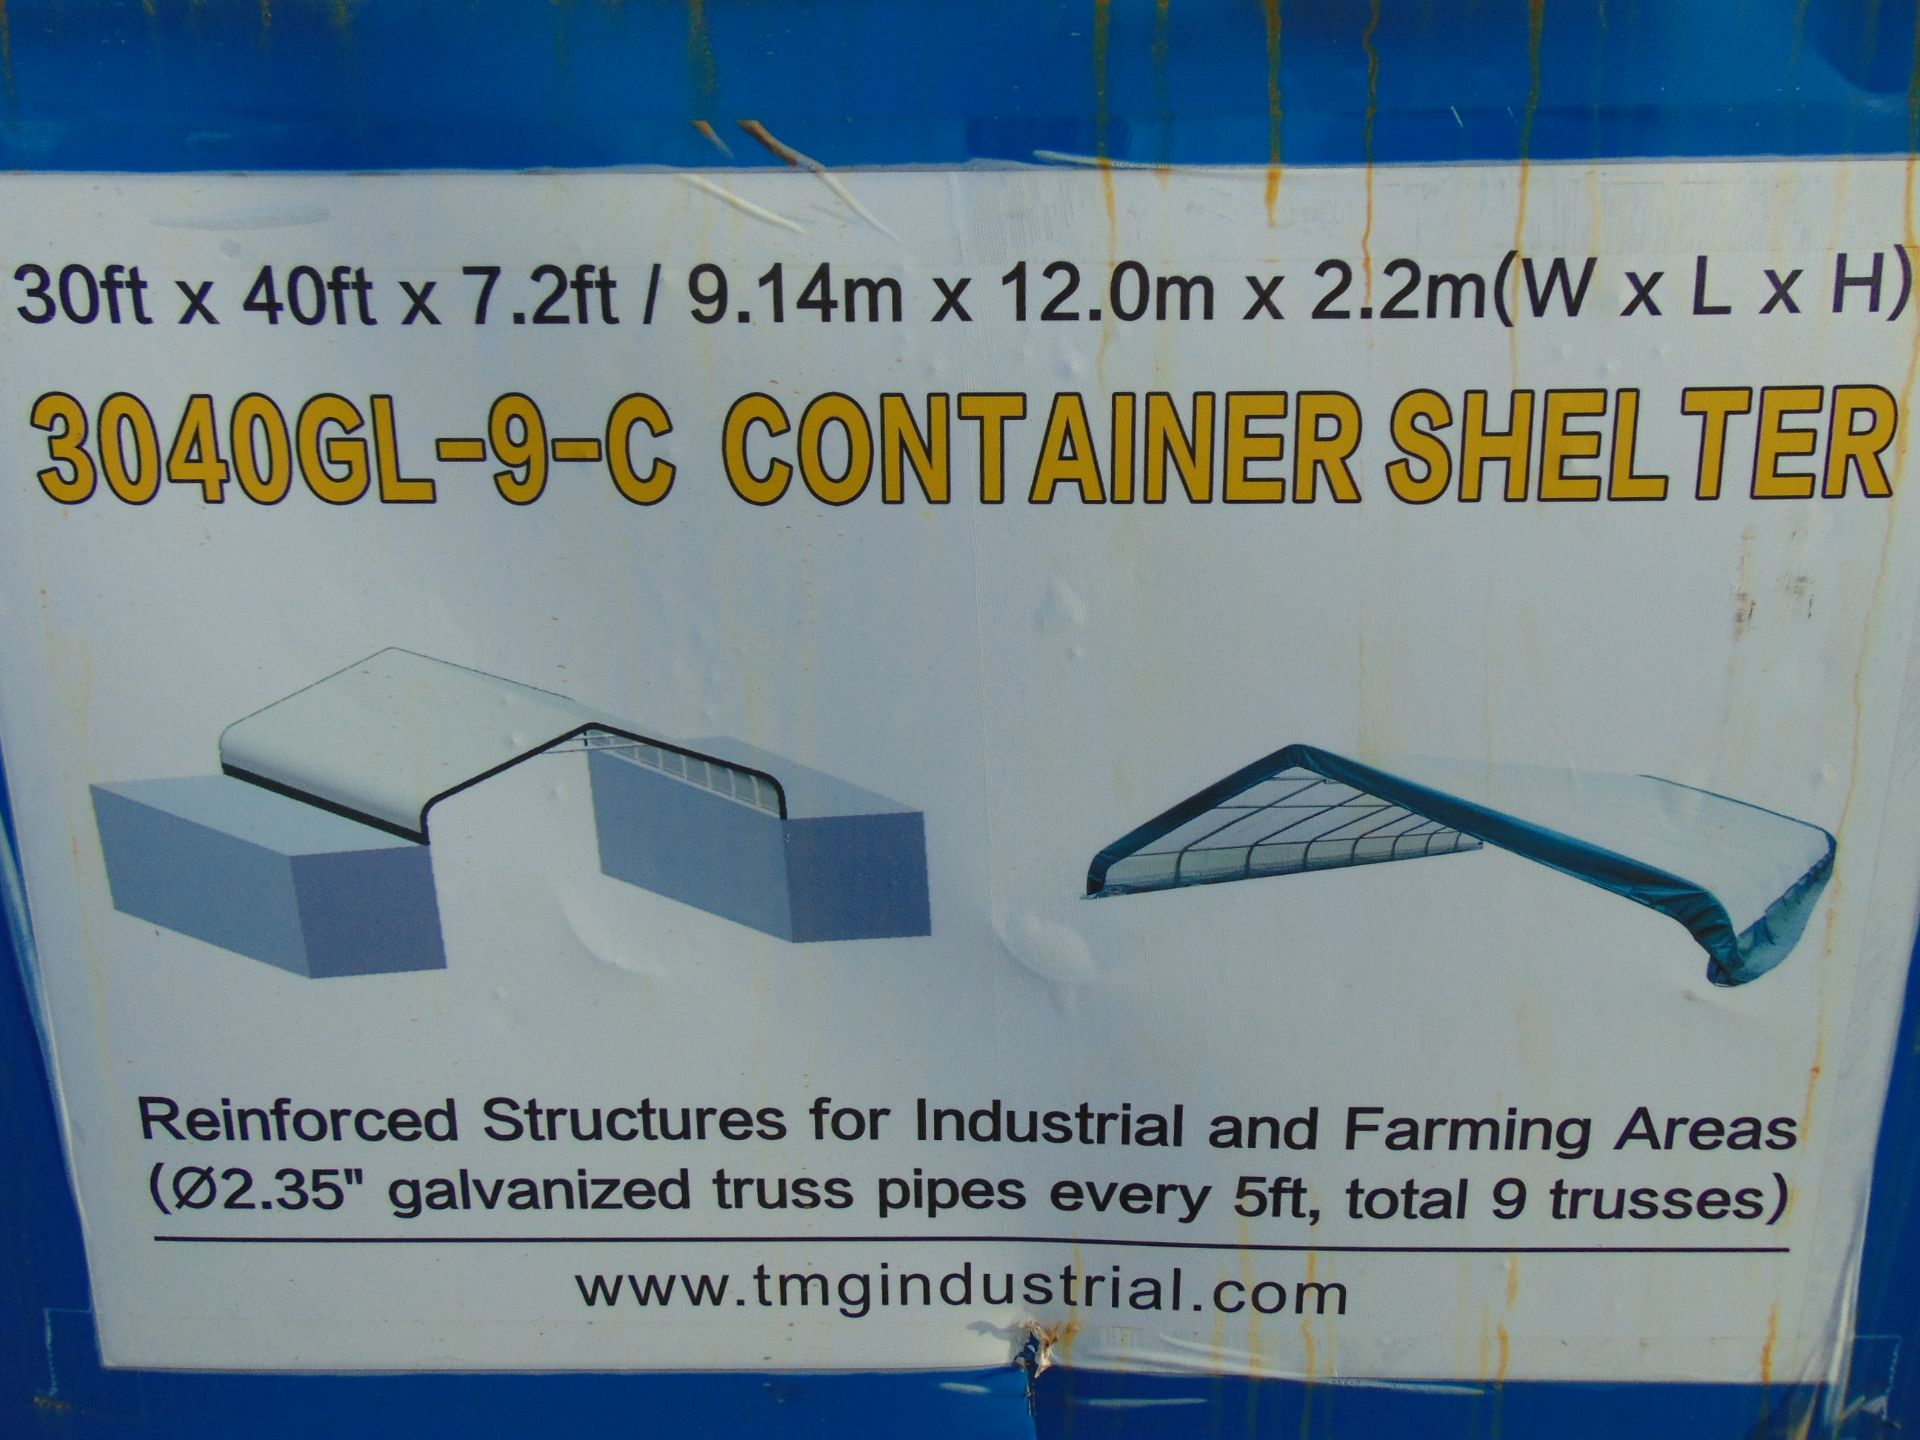 Lot 57 - Container Shelter 30'W x 40'L x 7.2' H P/No 3040GL-9-C